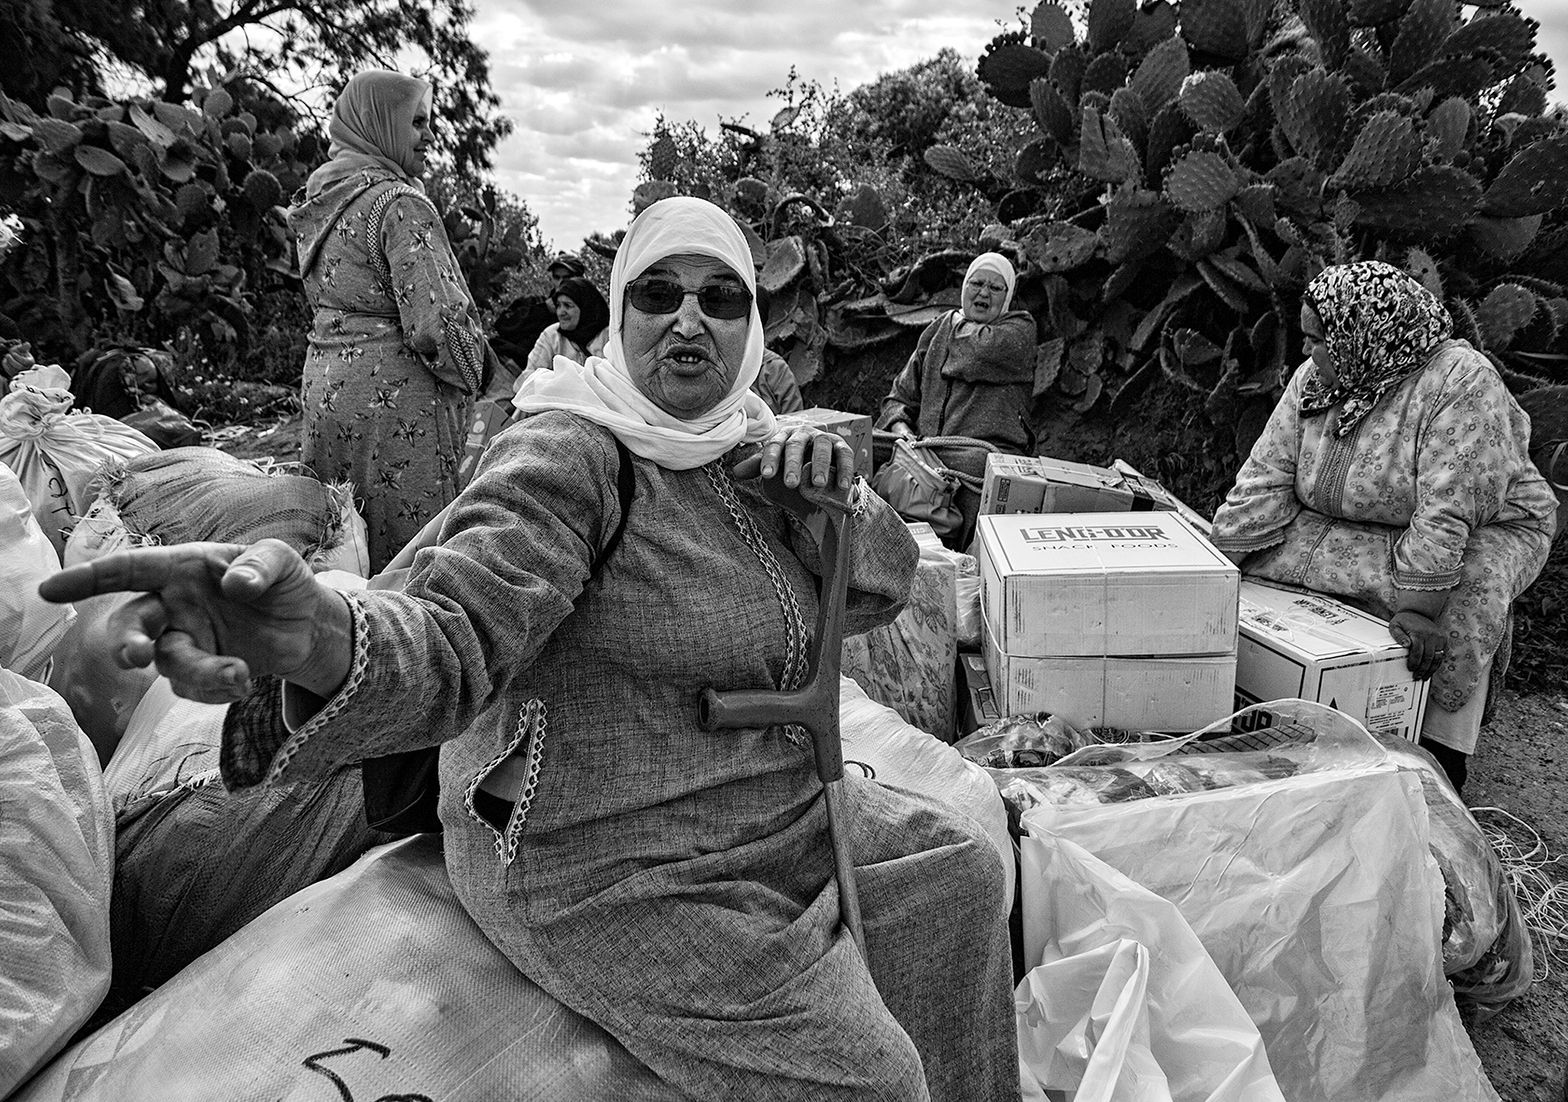 Some women wait for someone to help them load the goods on their backs. This is why often they suffer muscular skeletal disorders, because of the heavy burden, among other adverse health effects Melilla. Spain